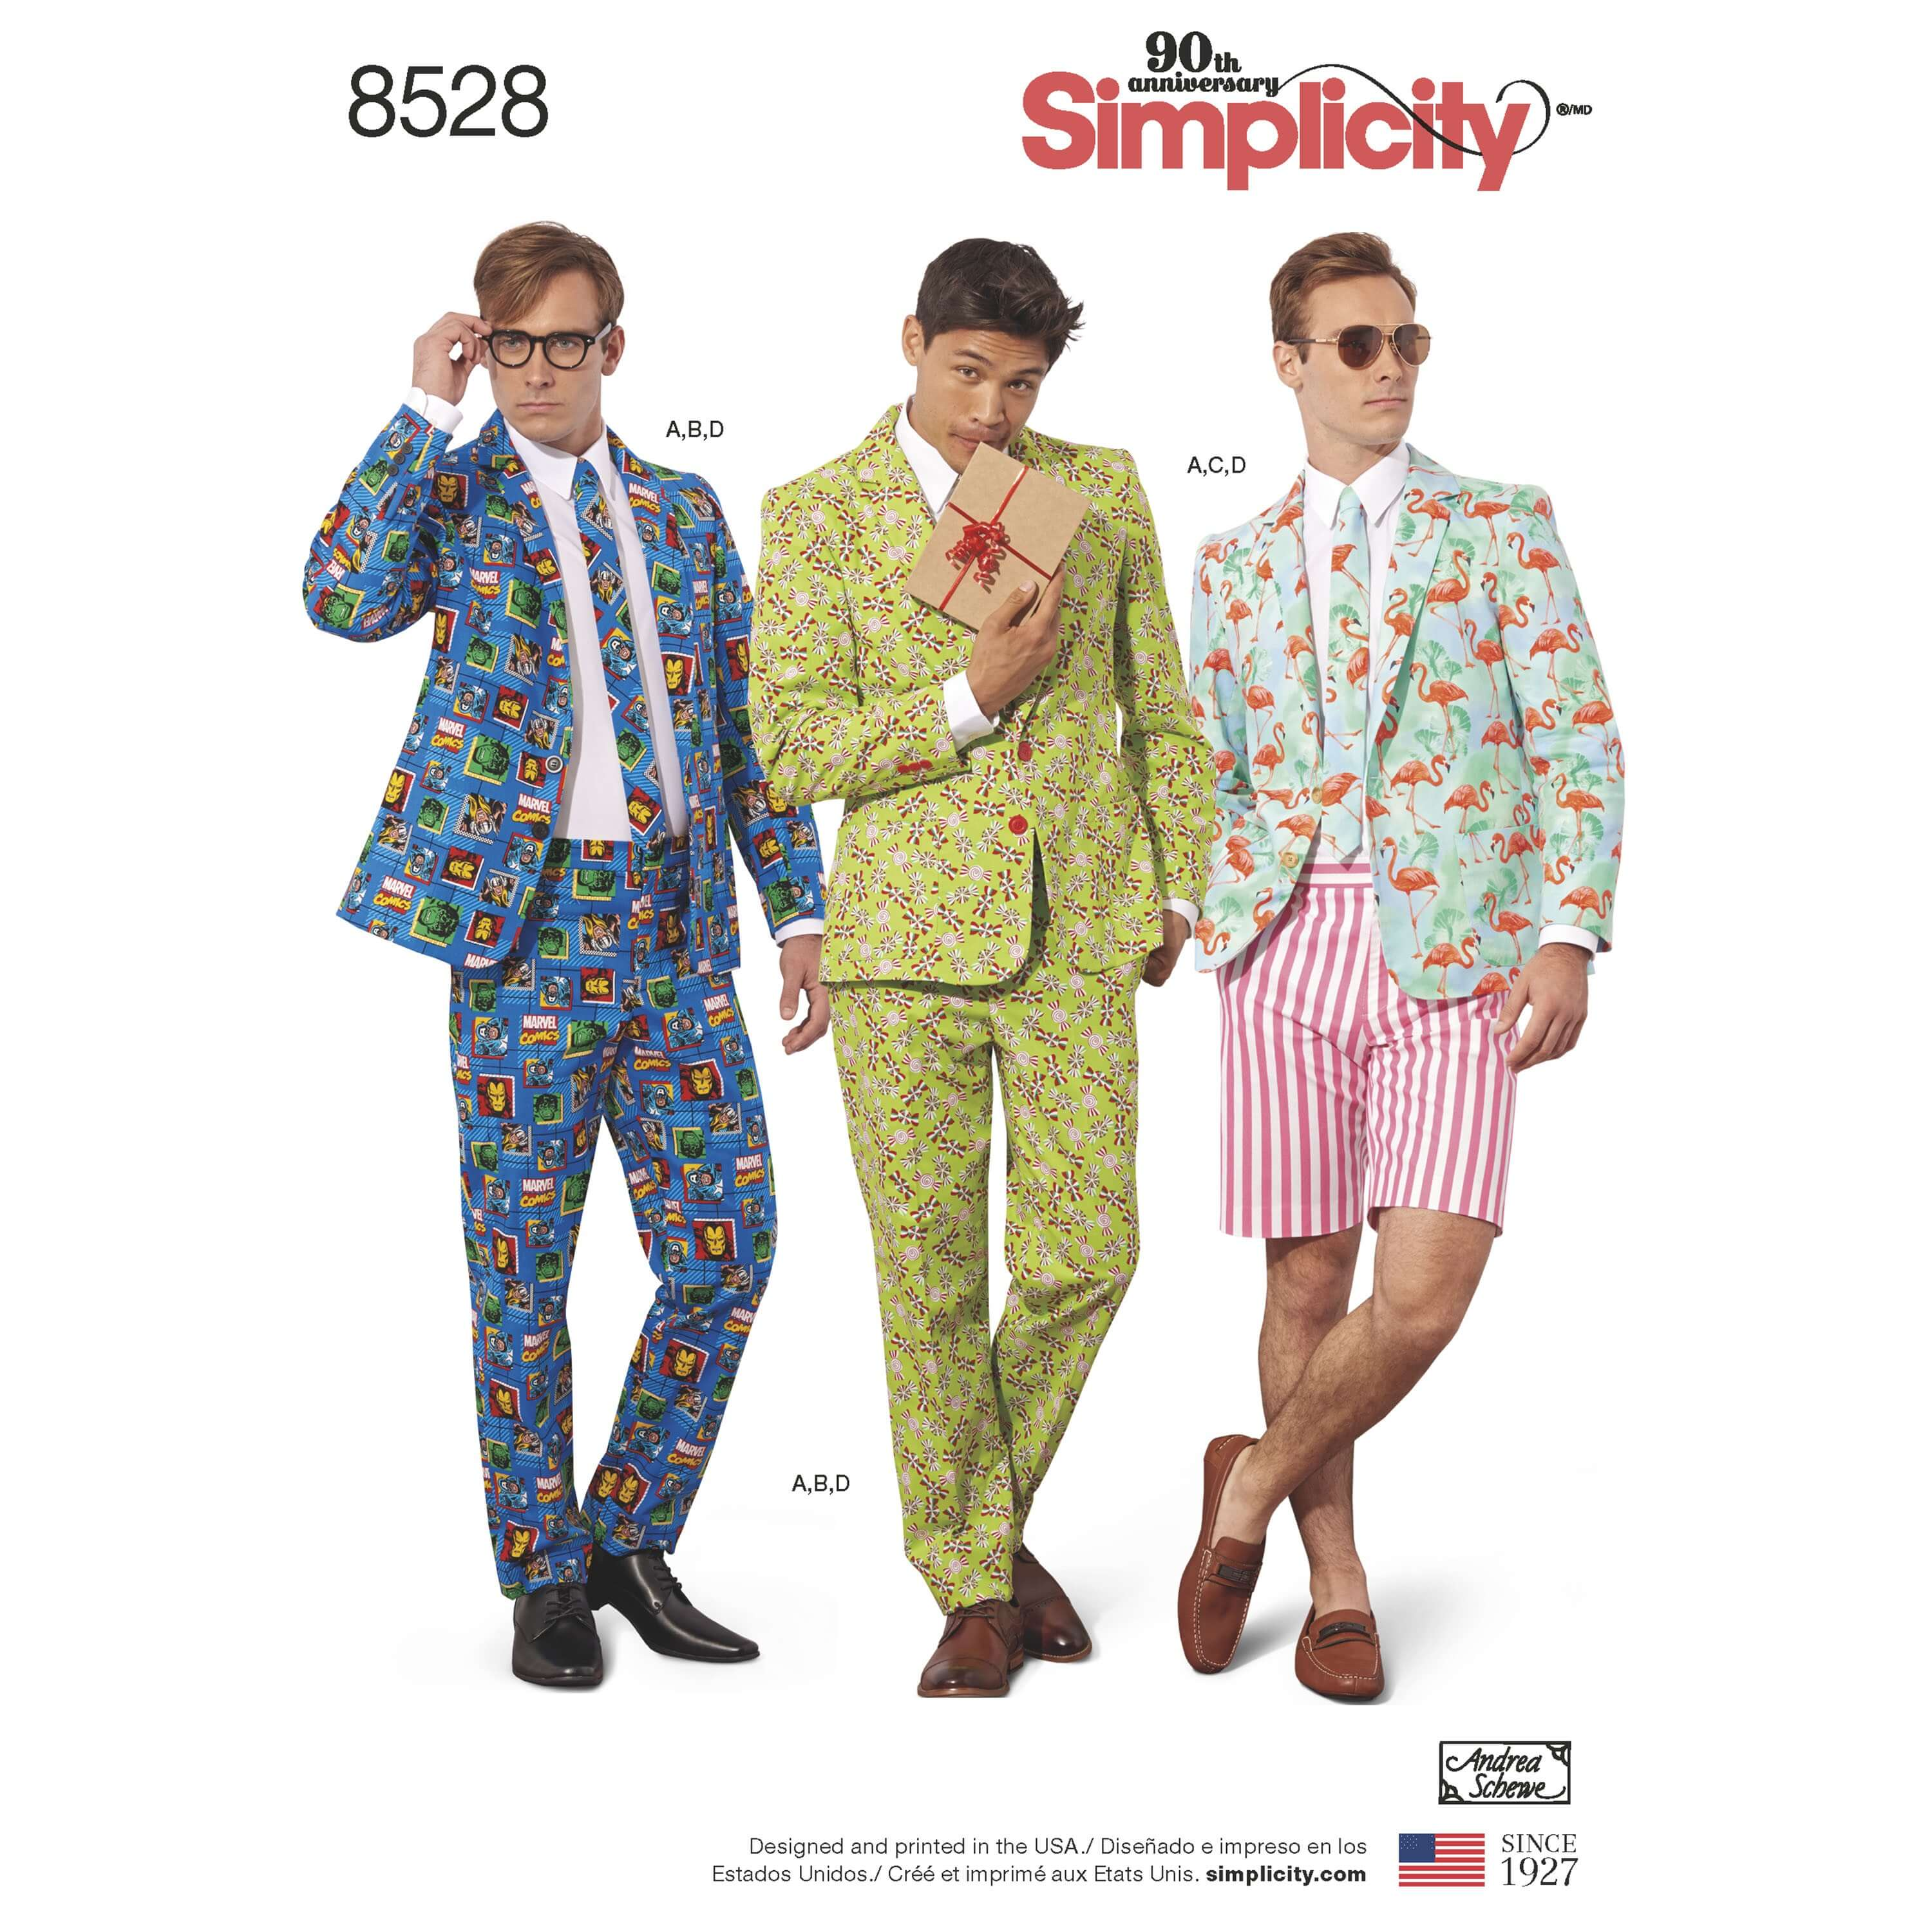 Simplicity Sewing Pattern 8528 Men's Costume Suits Jacket Trousers Shorts